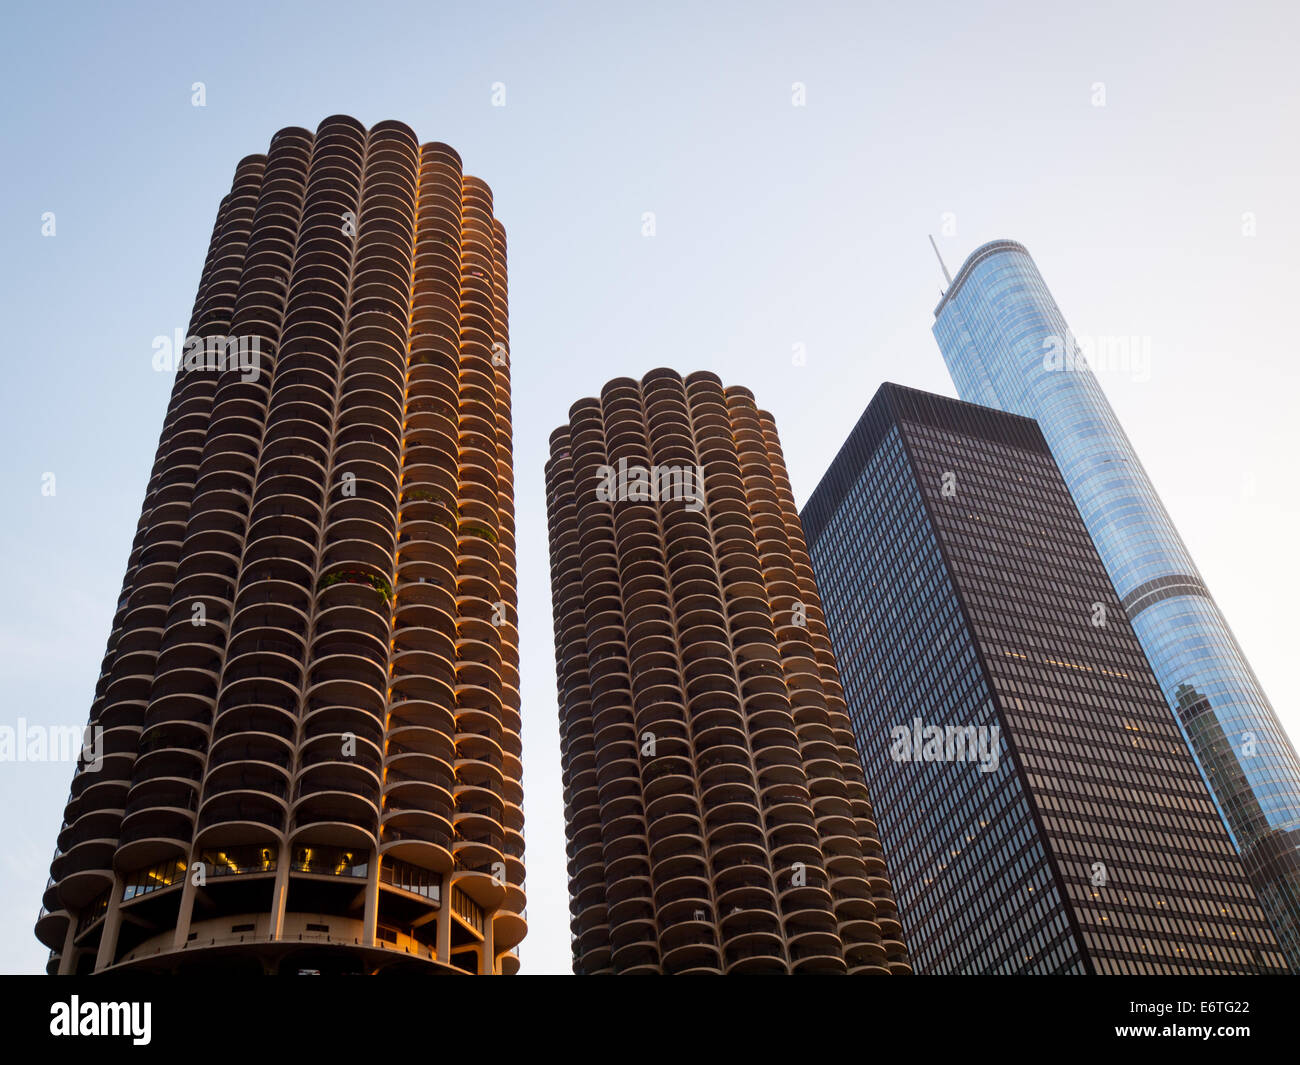 A view of Marina City, the IBM Building (AMA Plaza), and the Trump International Hotel and Tower Chicago. - Stock Image